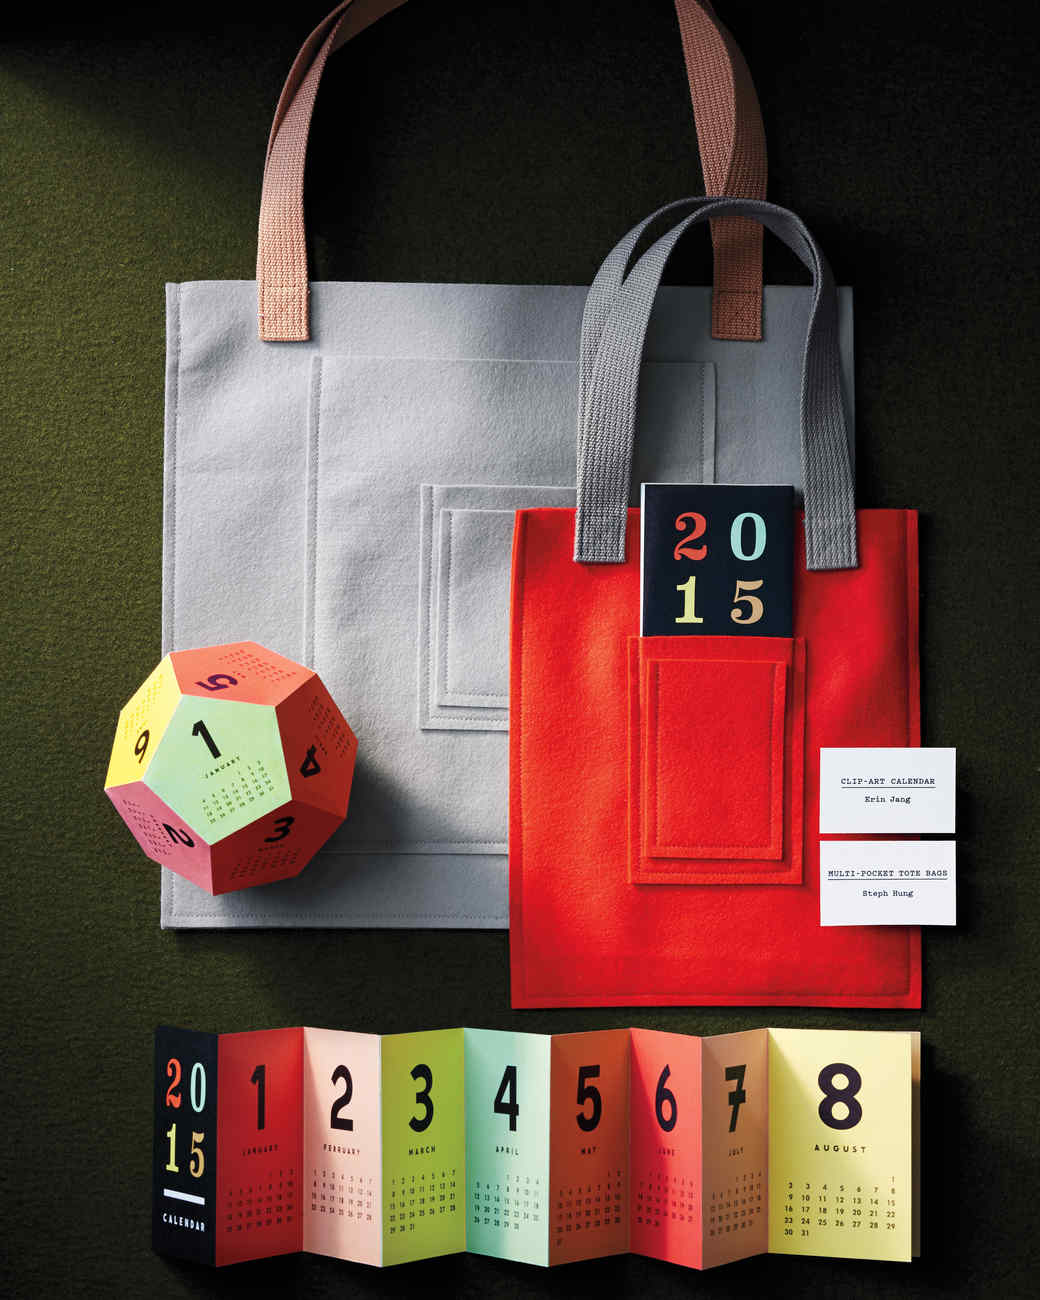 We love the idea of making this felt-bound tote bag as a gift—felt doesn't fray, so no hemming is required. From largest to smallest, the pockets on the gray bag are sized to hold a newspaper, tablet, smartphone, and a small subway card. You can make the smaller one, with pockets for small toys, for kids.